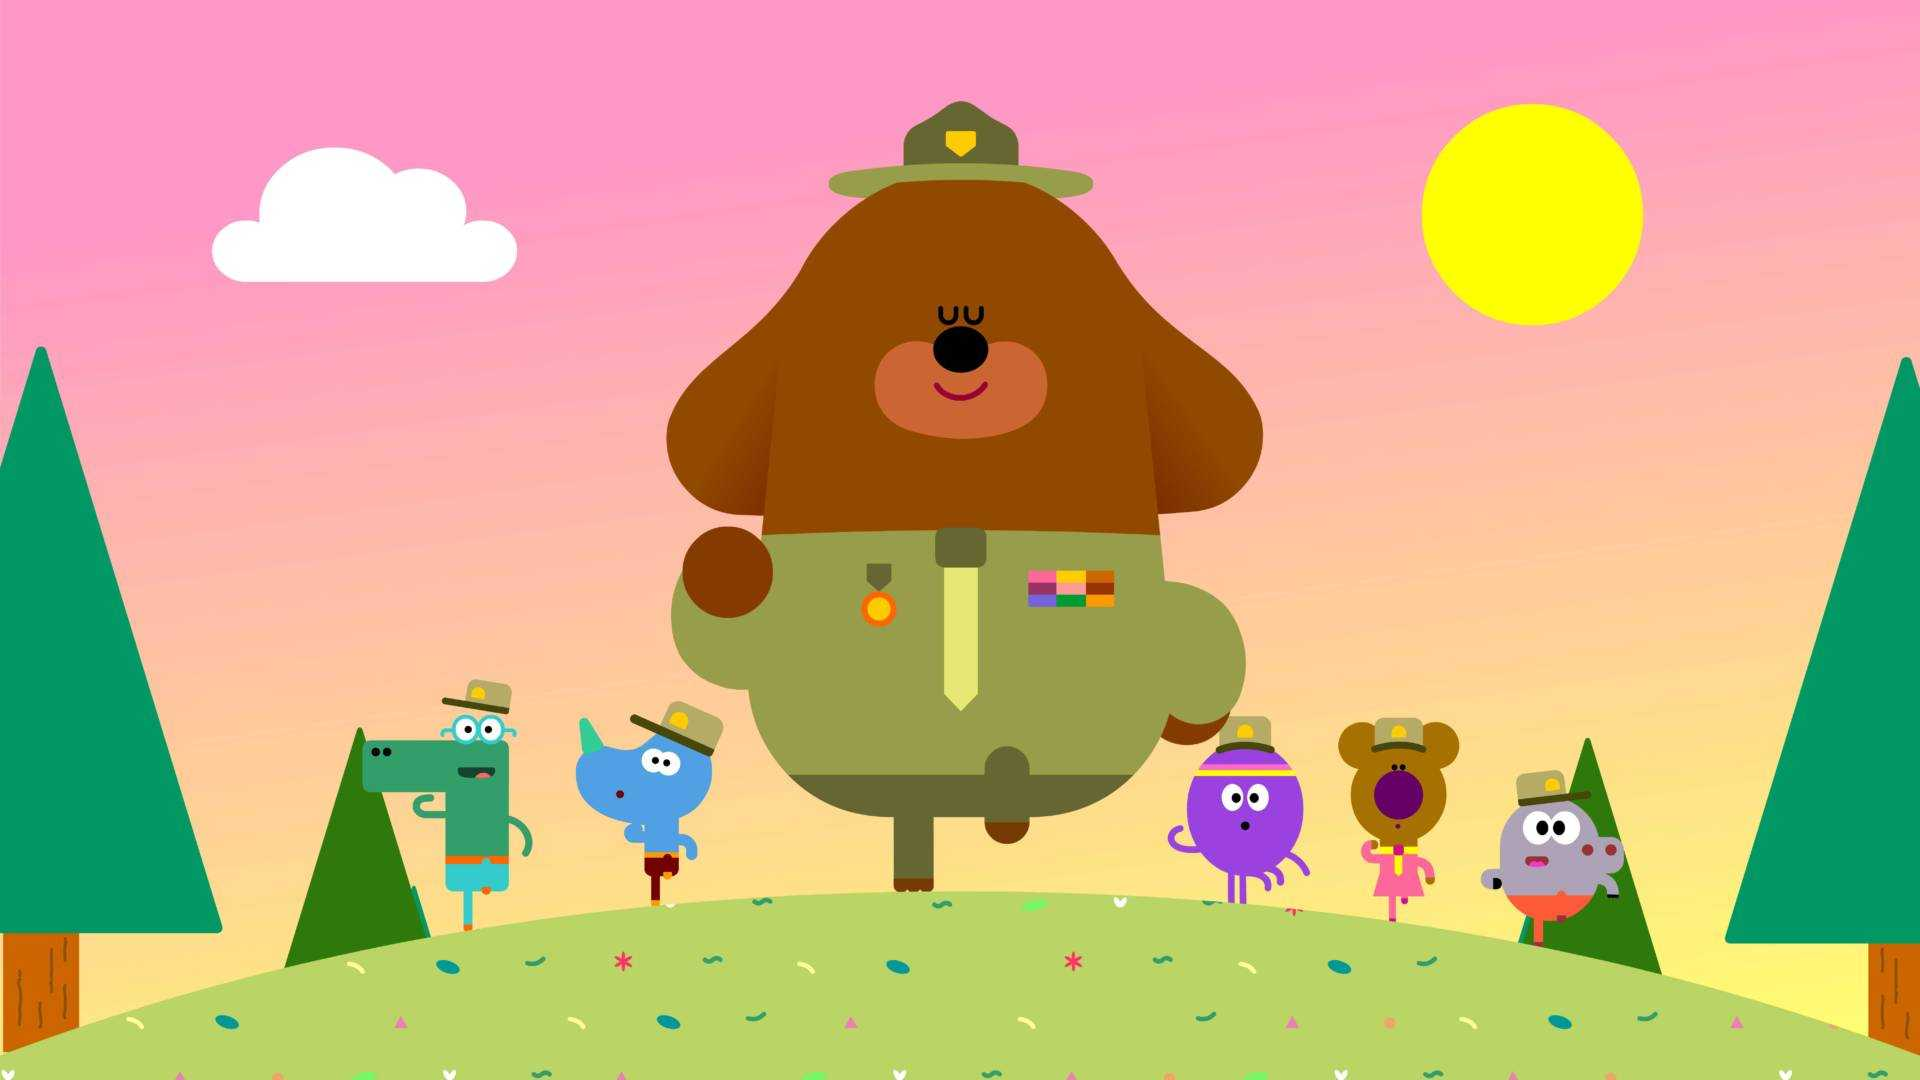 Duggee and the Squirrels march together in unison